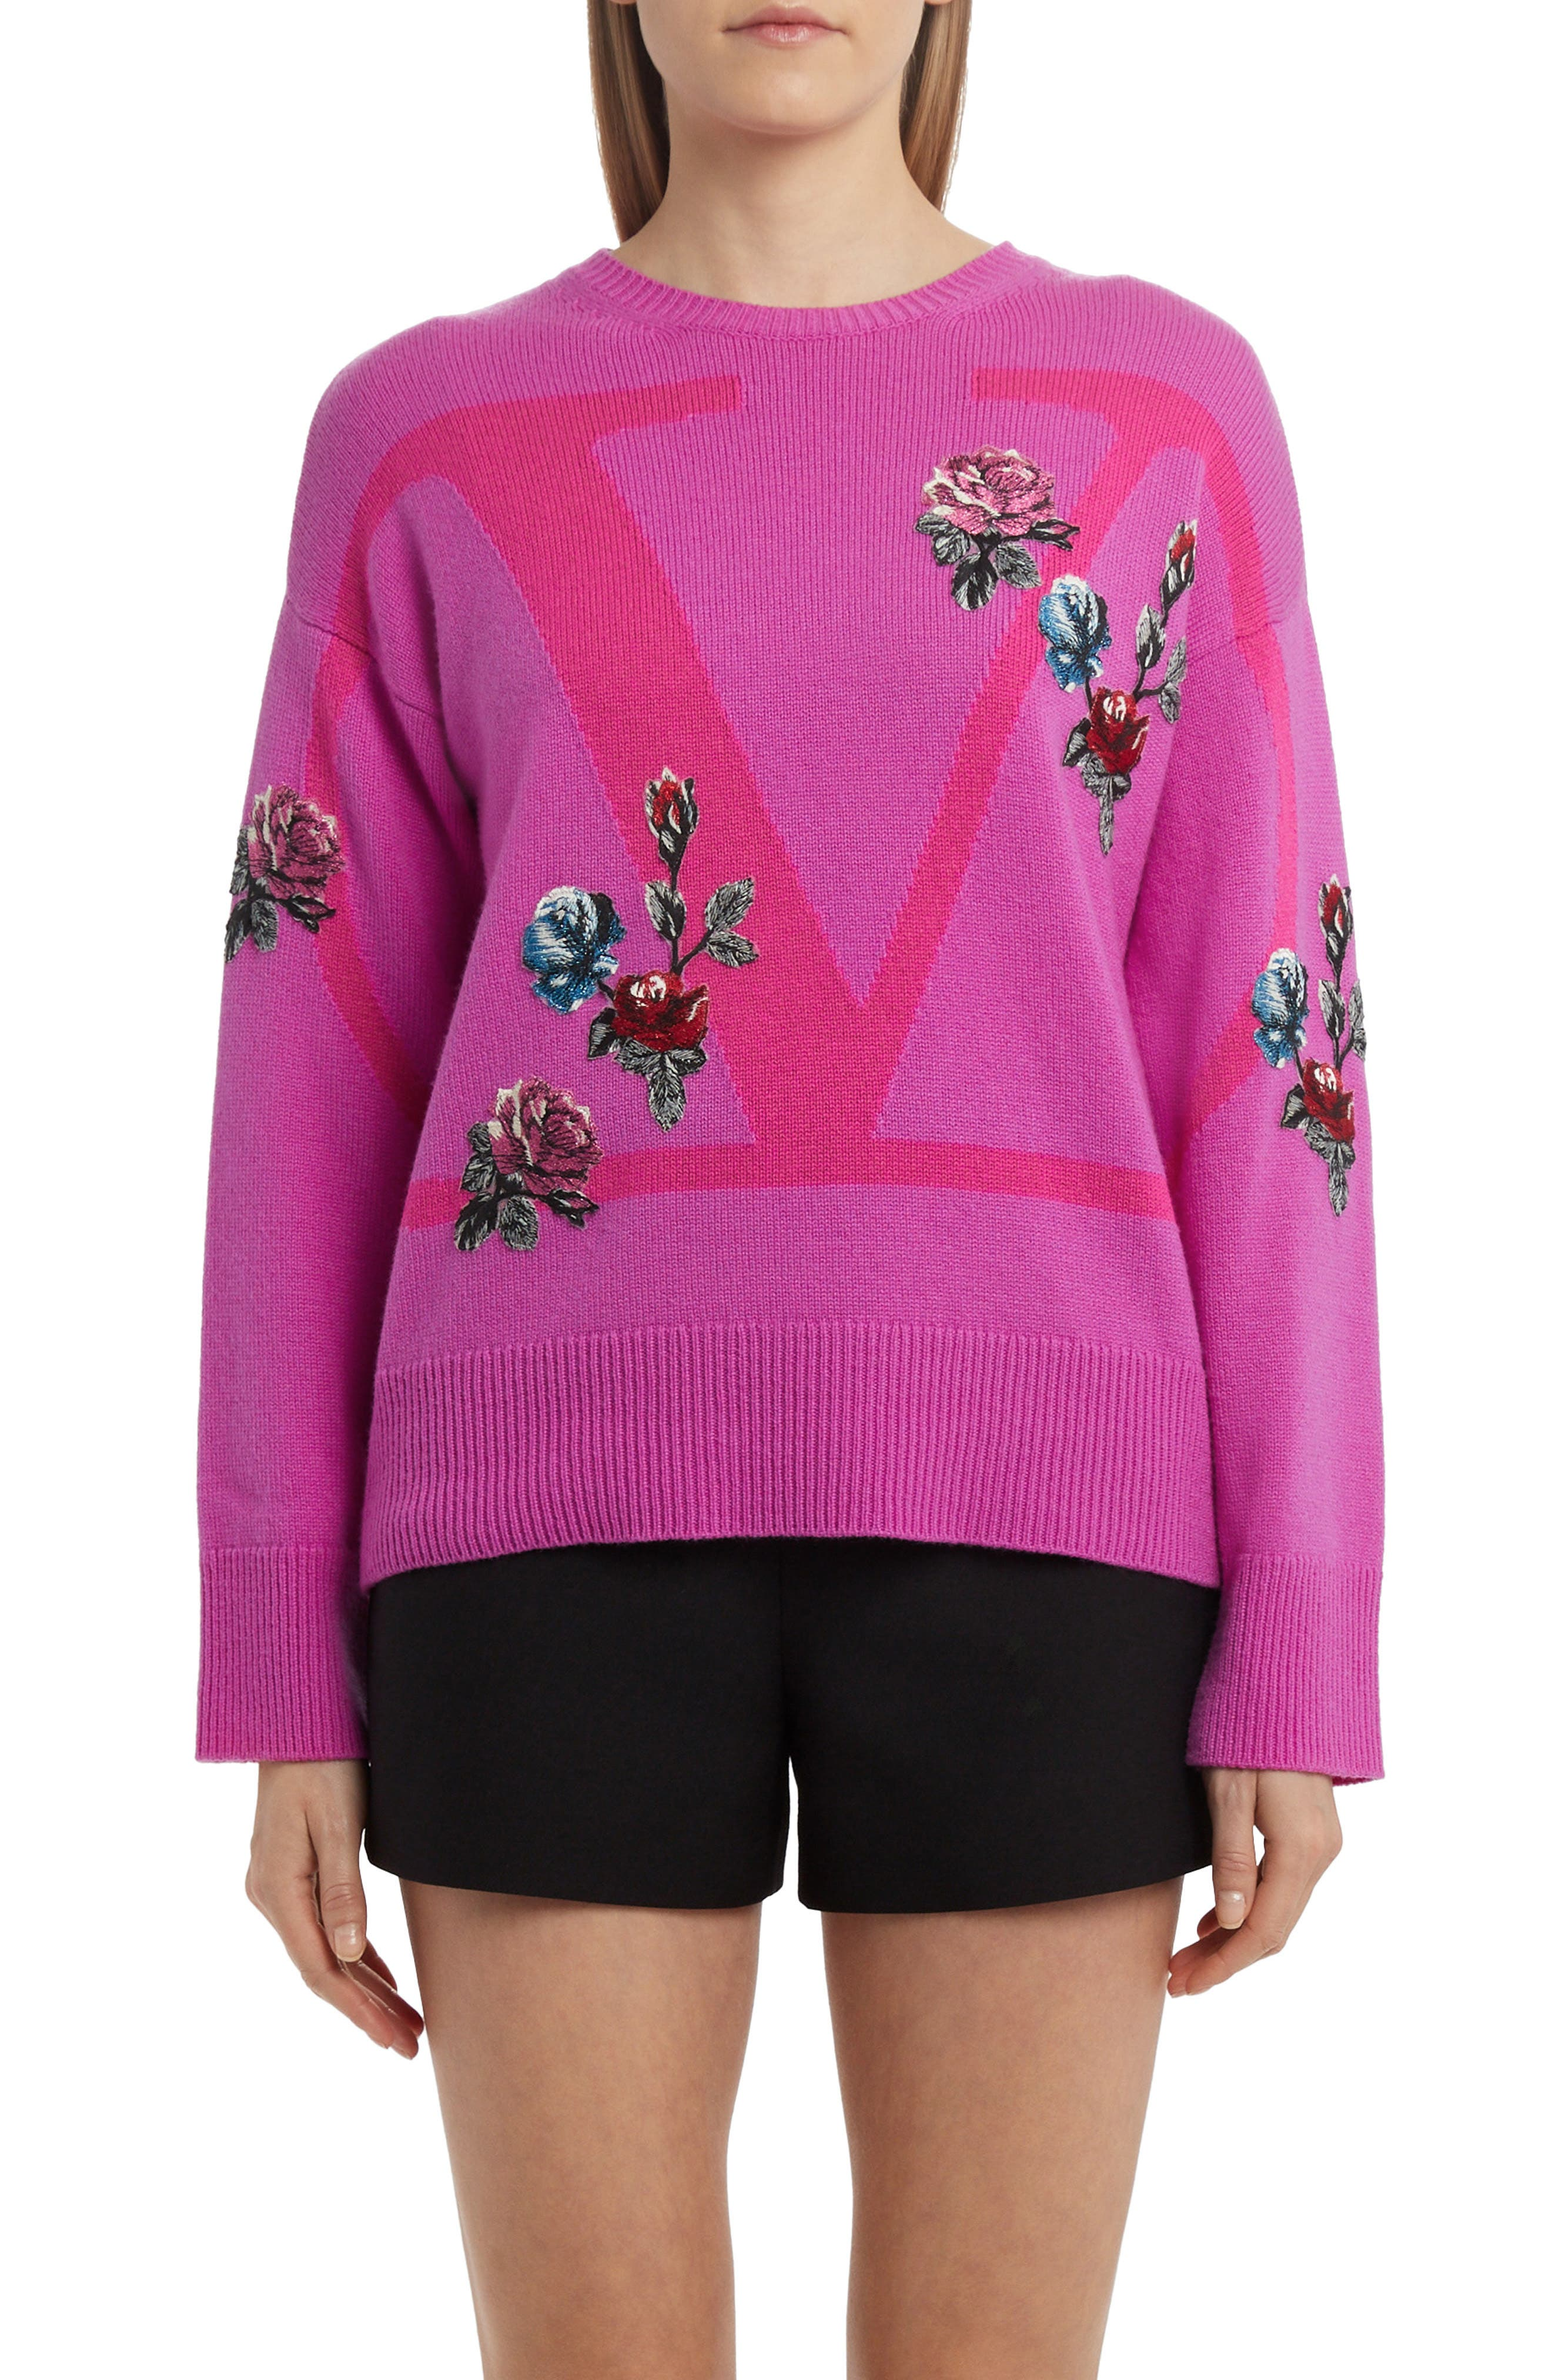 A relaxed, oversized fit modernizes this cashmere crewneck pullover that strikes a signature romantic note with flowery appliques and succulent berry hues. Style Name: Valentino Rose Applique Logo Cashmere Sweater. Style Number: 6013655. Available in stores.